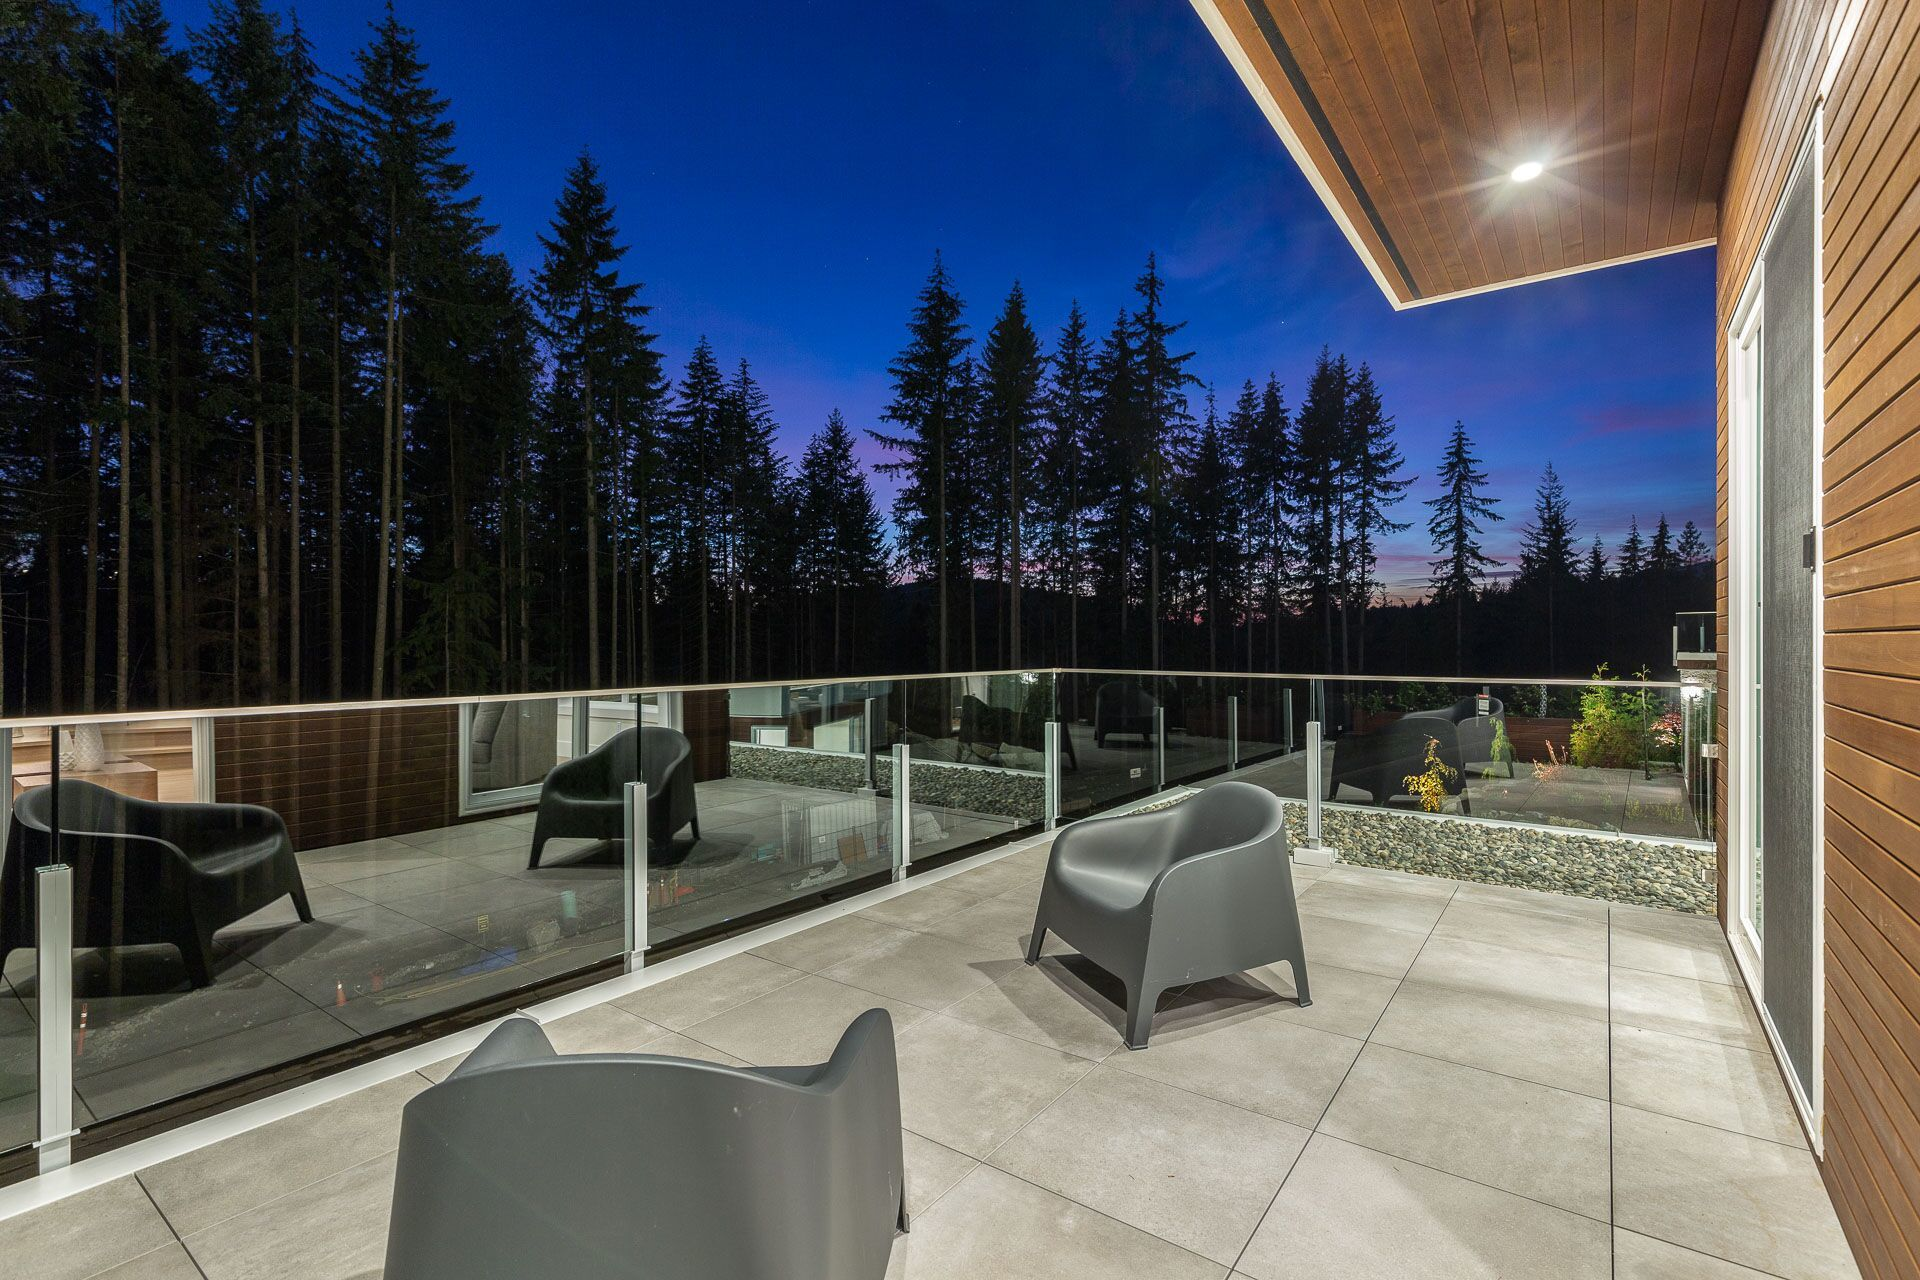 ck2yvqqo at 1509 Crystal Creek Drive, Anmore, Port Moody